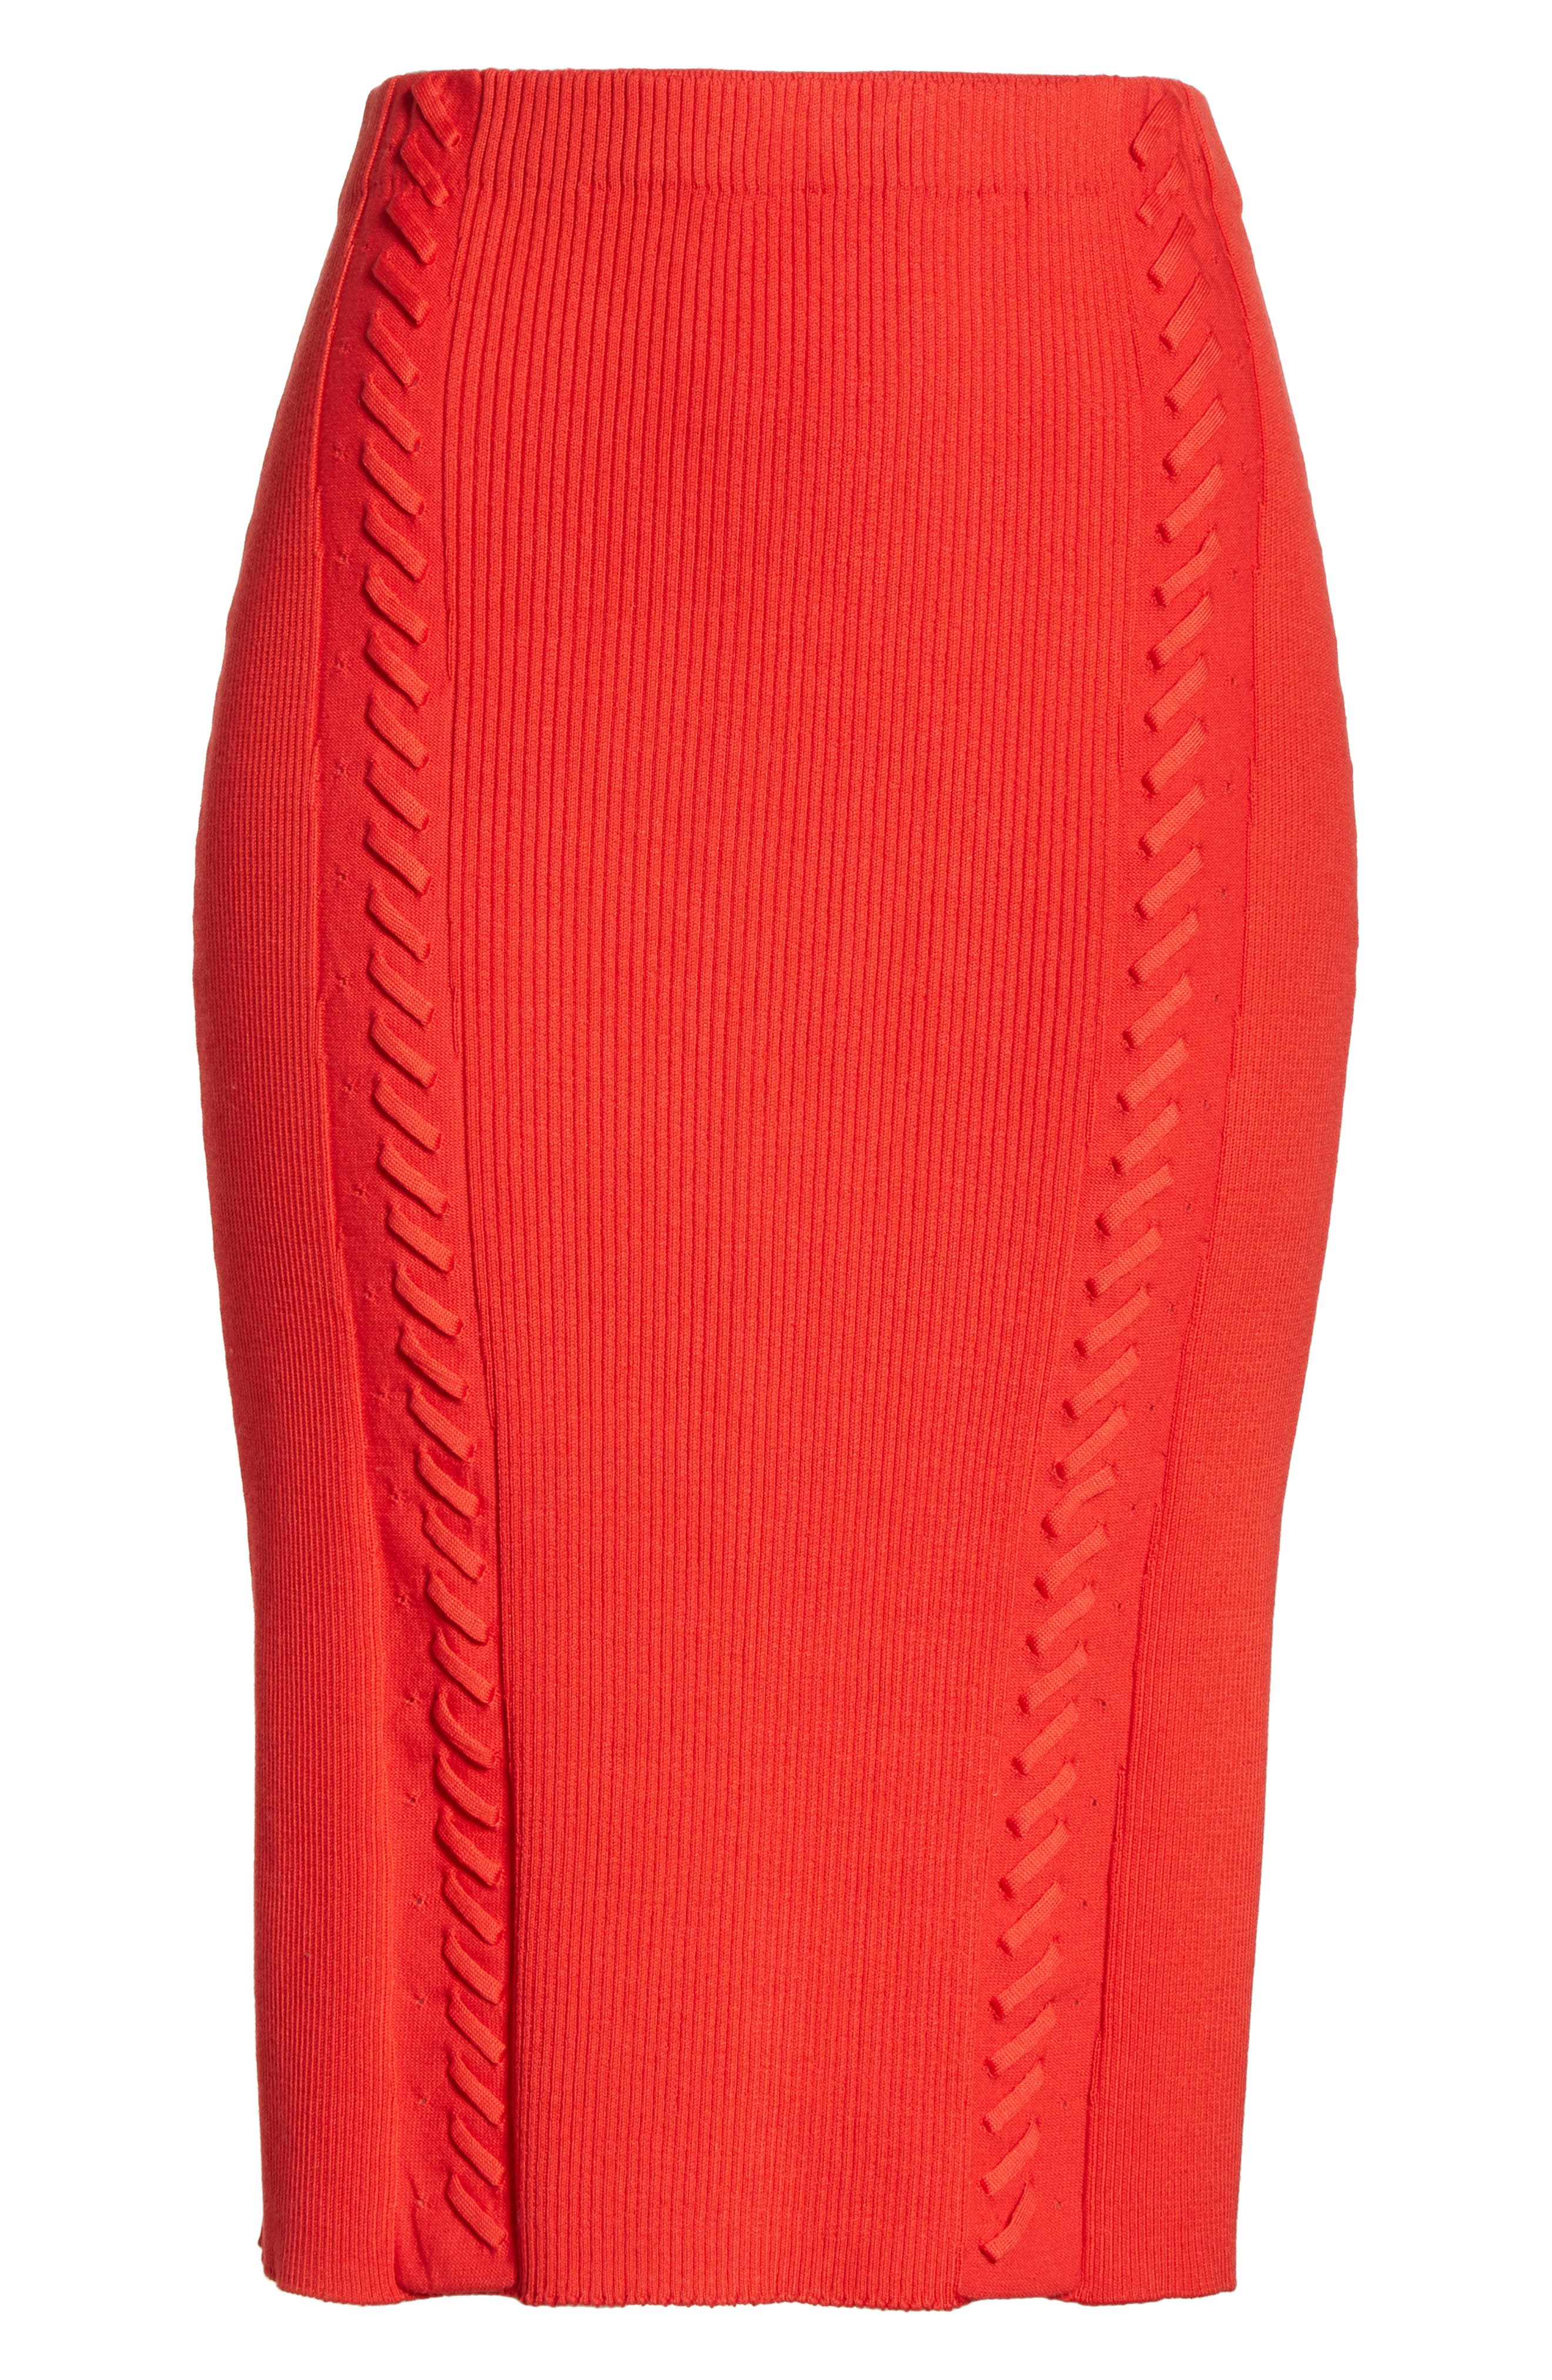 Brandy Whipstitch Pencil Skirt,                             Alternate thumbnail 6, color,                             Red